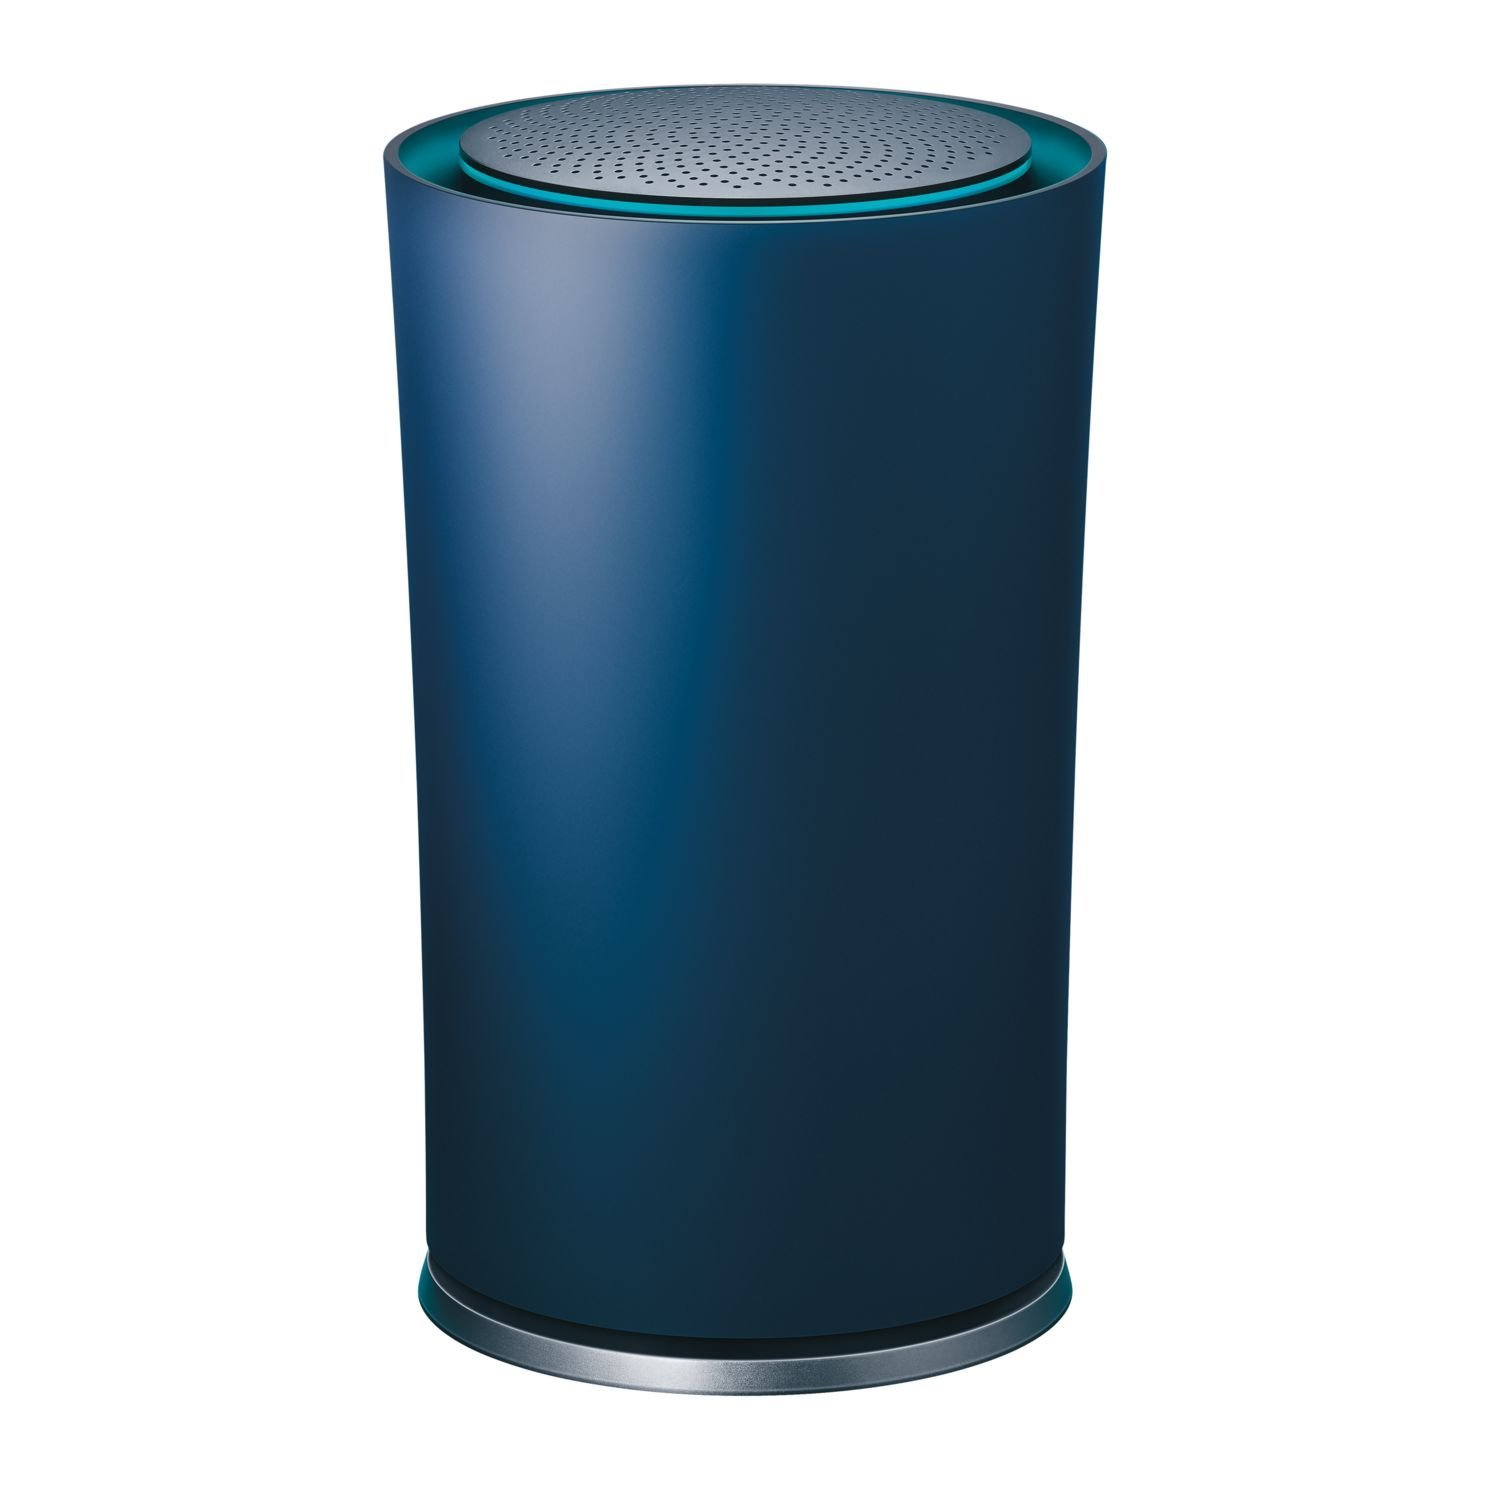 Refurbished TP-LINK TGR1900BLU OnHub AC1900 Wireless Dual-Band Gigabit Router by Google by TP-LINK